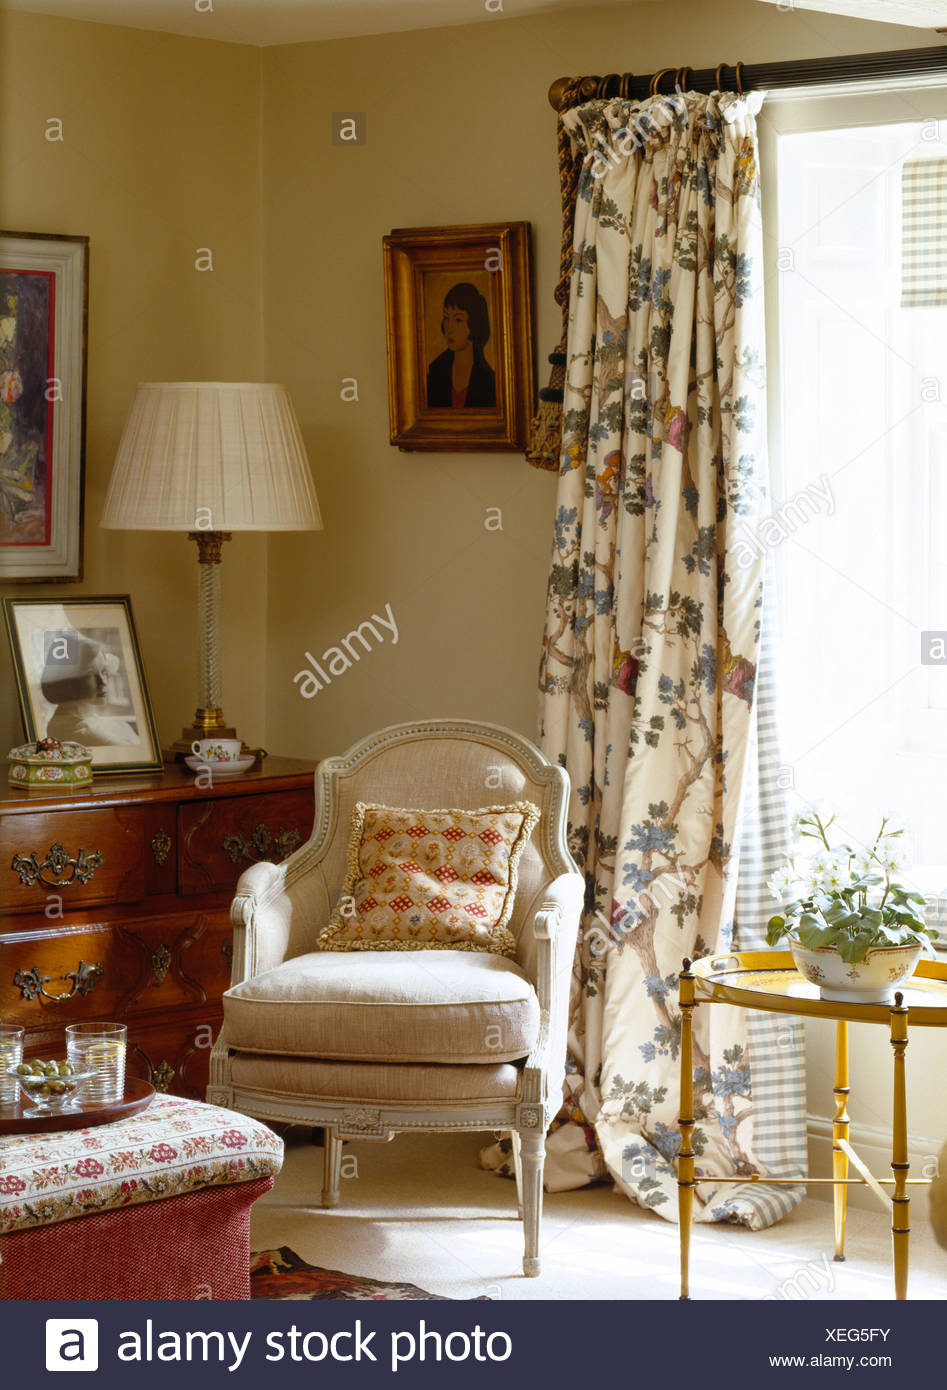 Upholstered French Style Armchair In Front Of Window With Floral